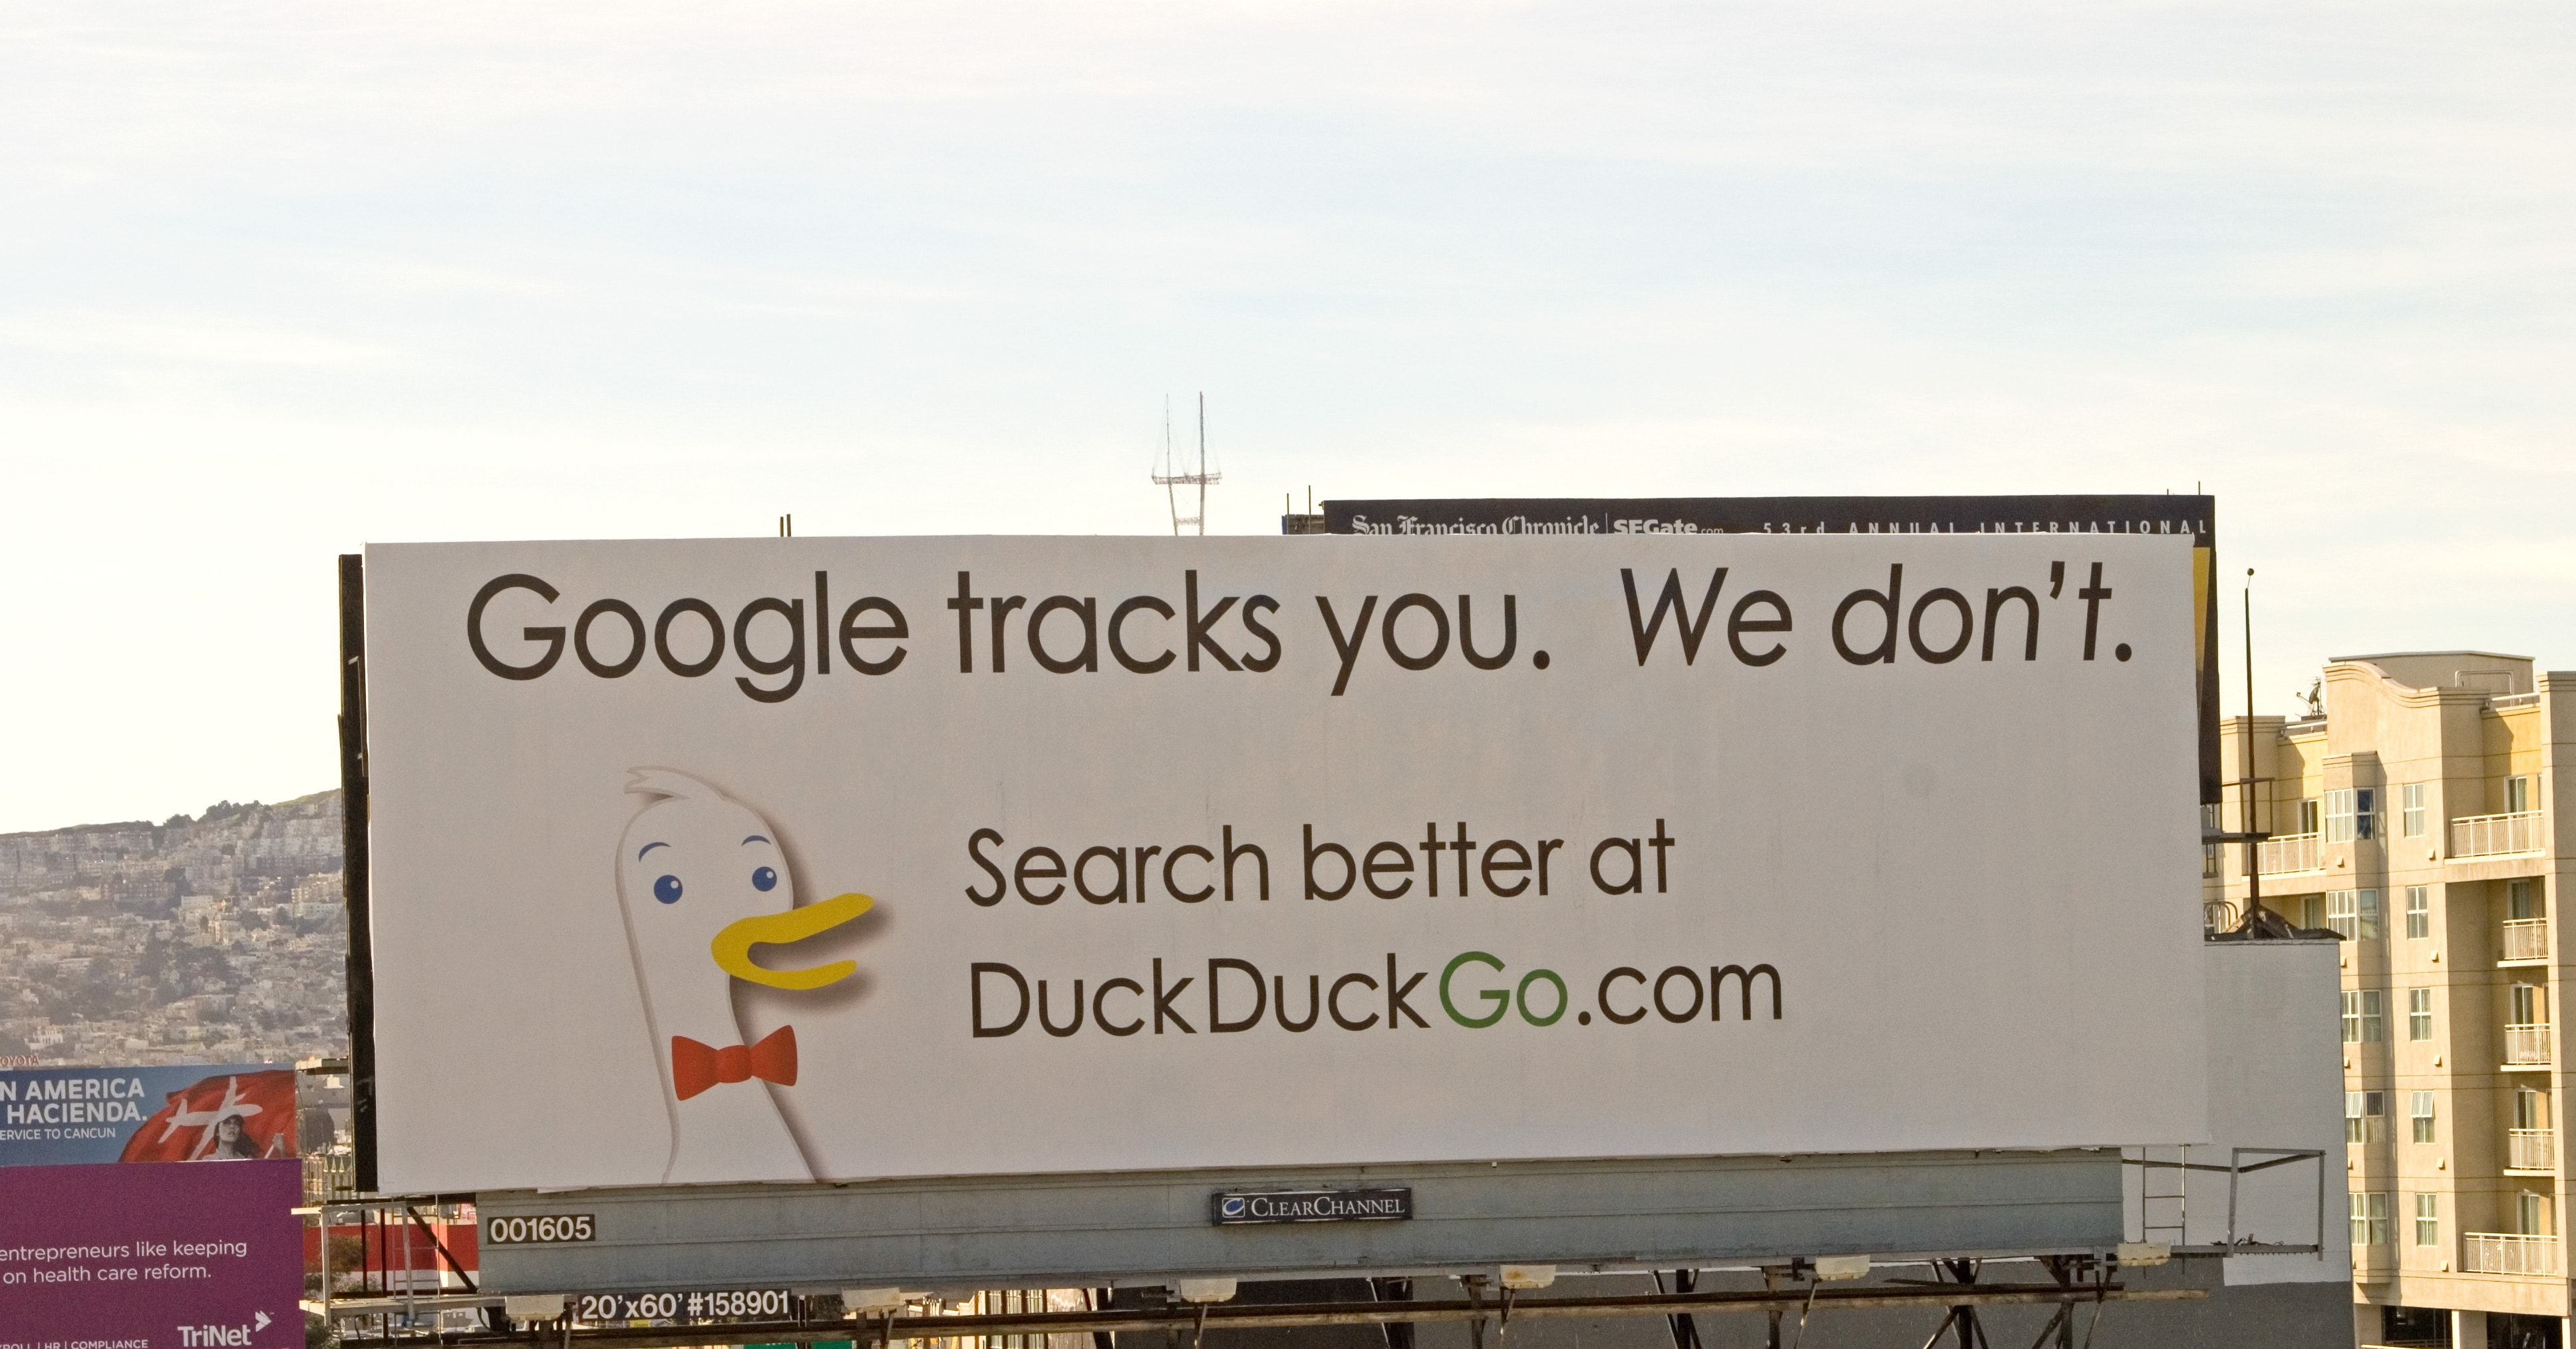 726ec947ef97ca2938ff6 - How things will Change if Apple Buys DuckDuckGo